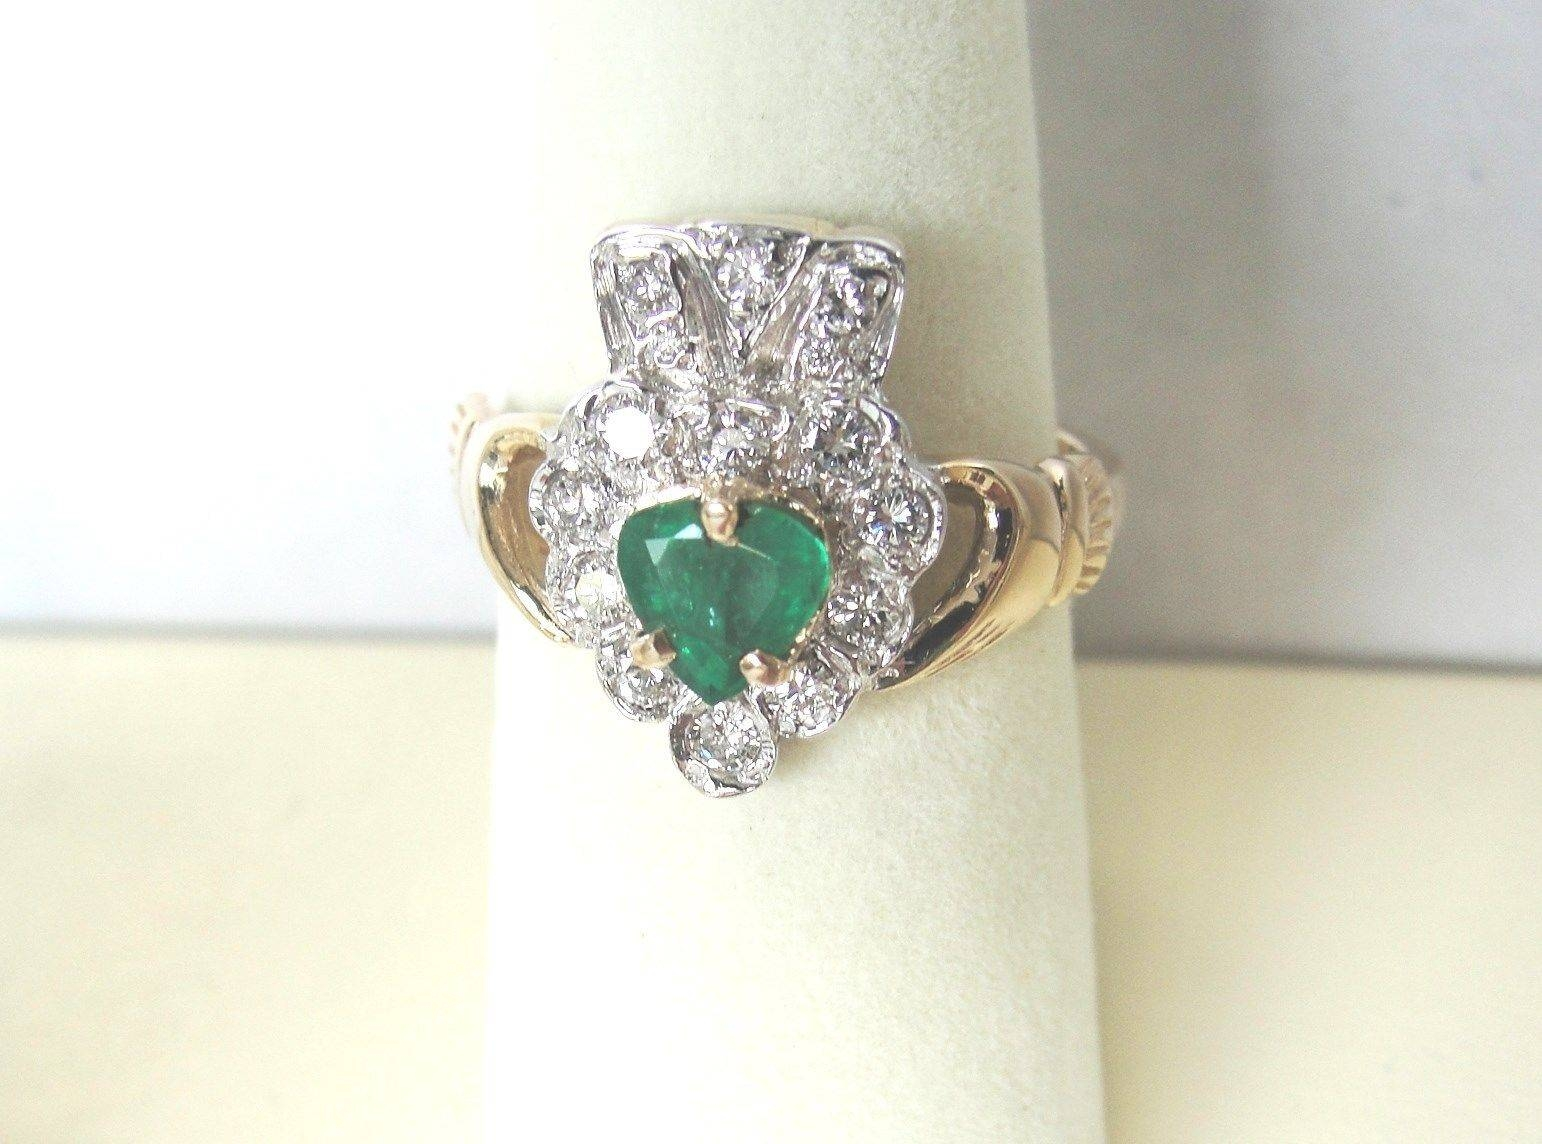 Ultimate 14K Yellow Gold Diamond & Emerald Claddagh Ringfacet Regarding Emerald Claddagh Engagement Rings (Gallery 15 of 15)